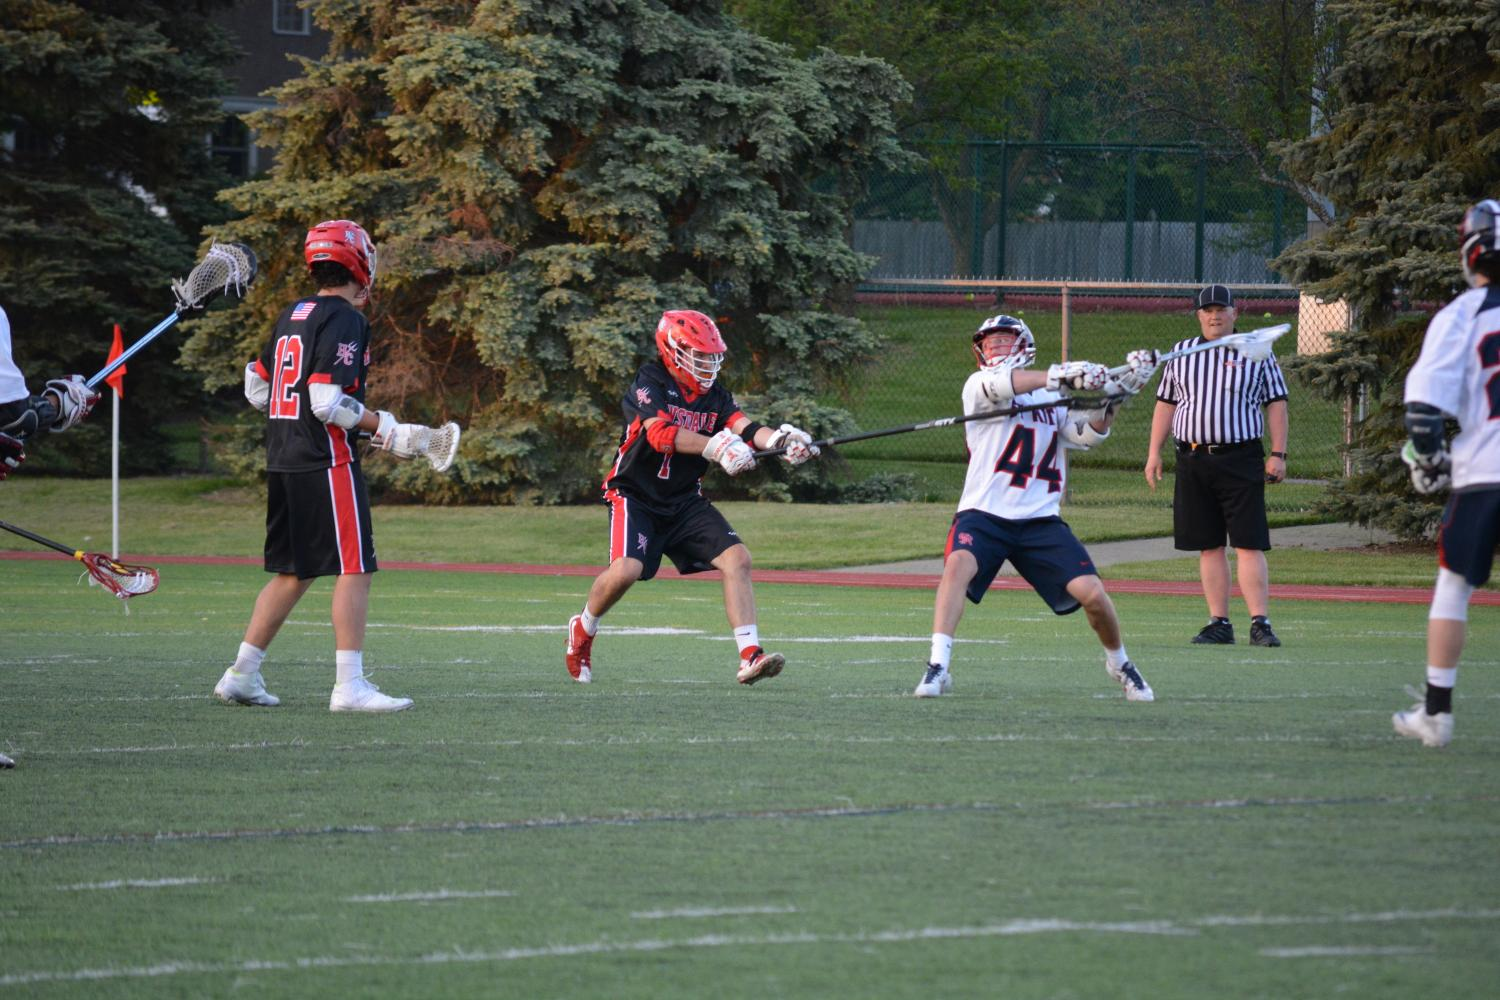 The+varsity+team%27s+most+recent+game+was+against+Glenbard+West+at+5%3A30+p.m.+at+Dickinson+Field+on+May+17%2C+and+they+won+10-8.+Now+it%27s+on+to+the+playoffs.